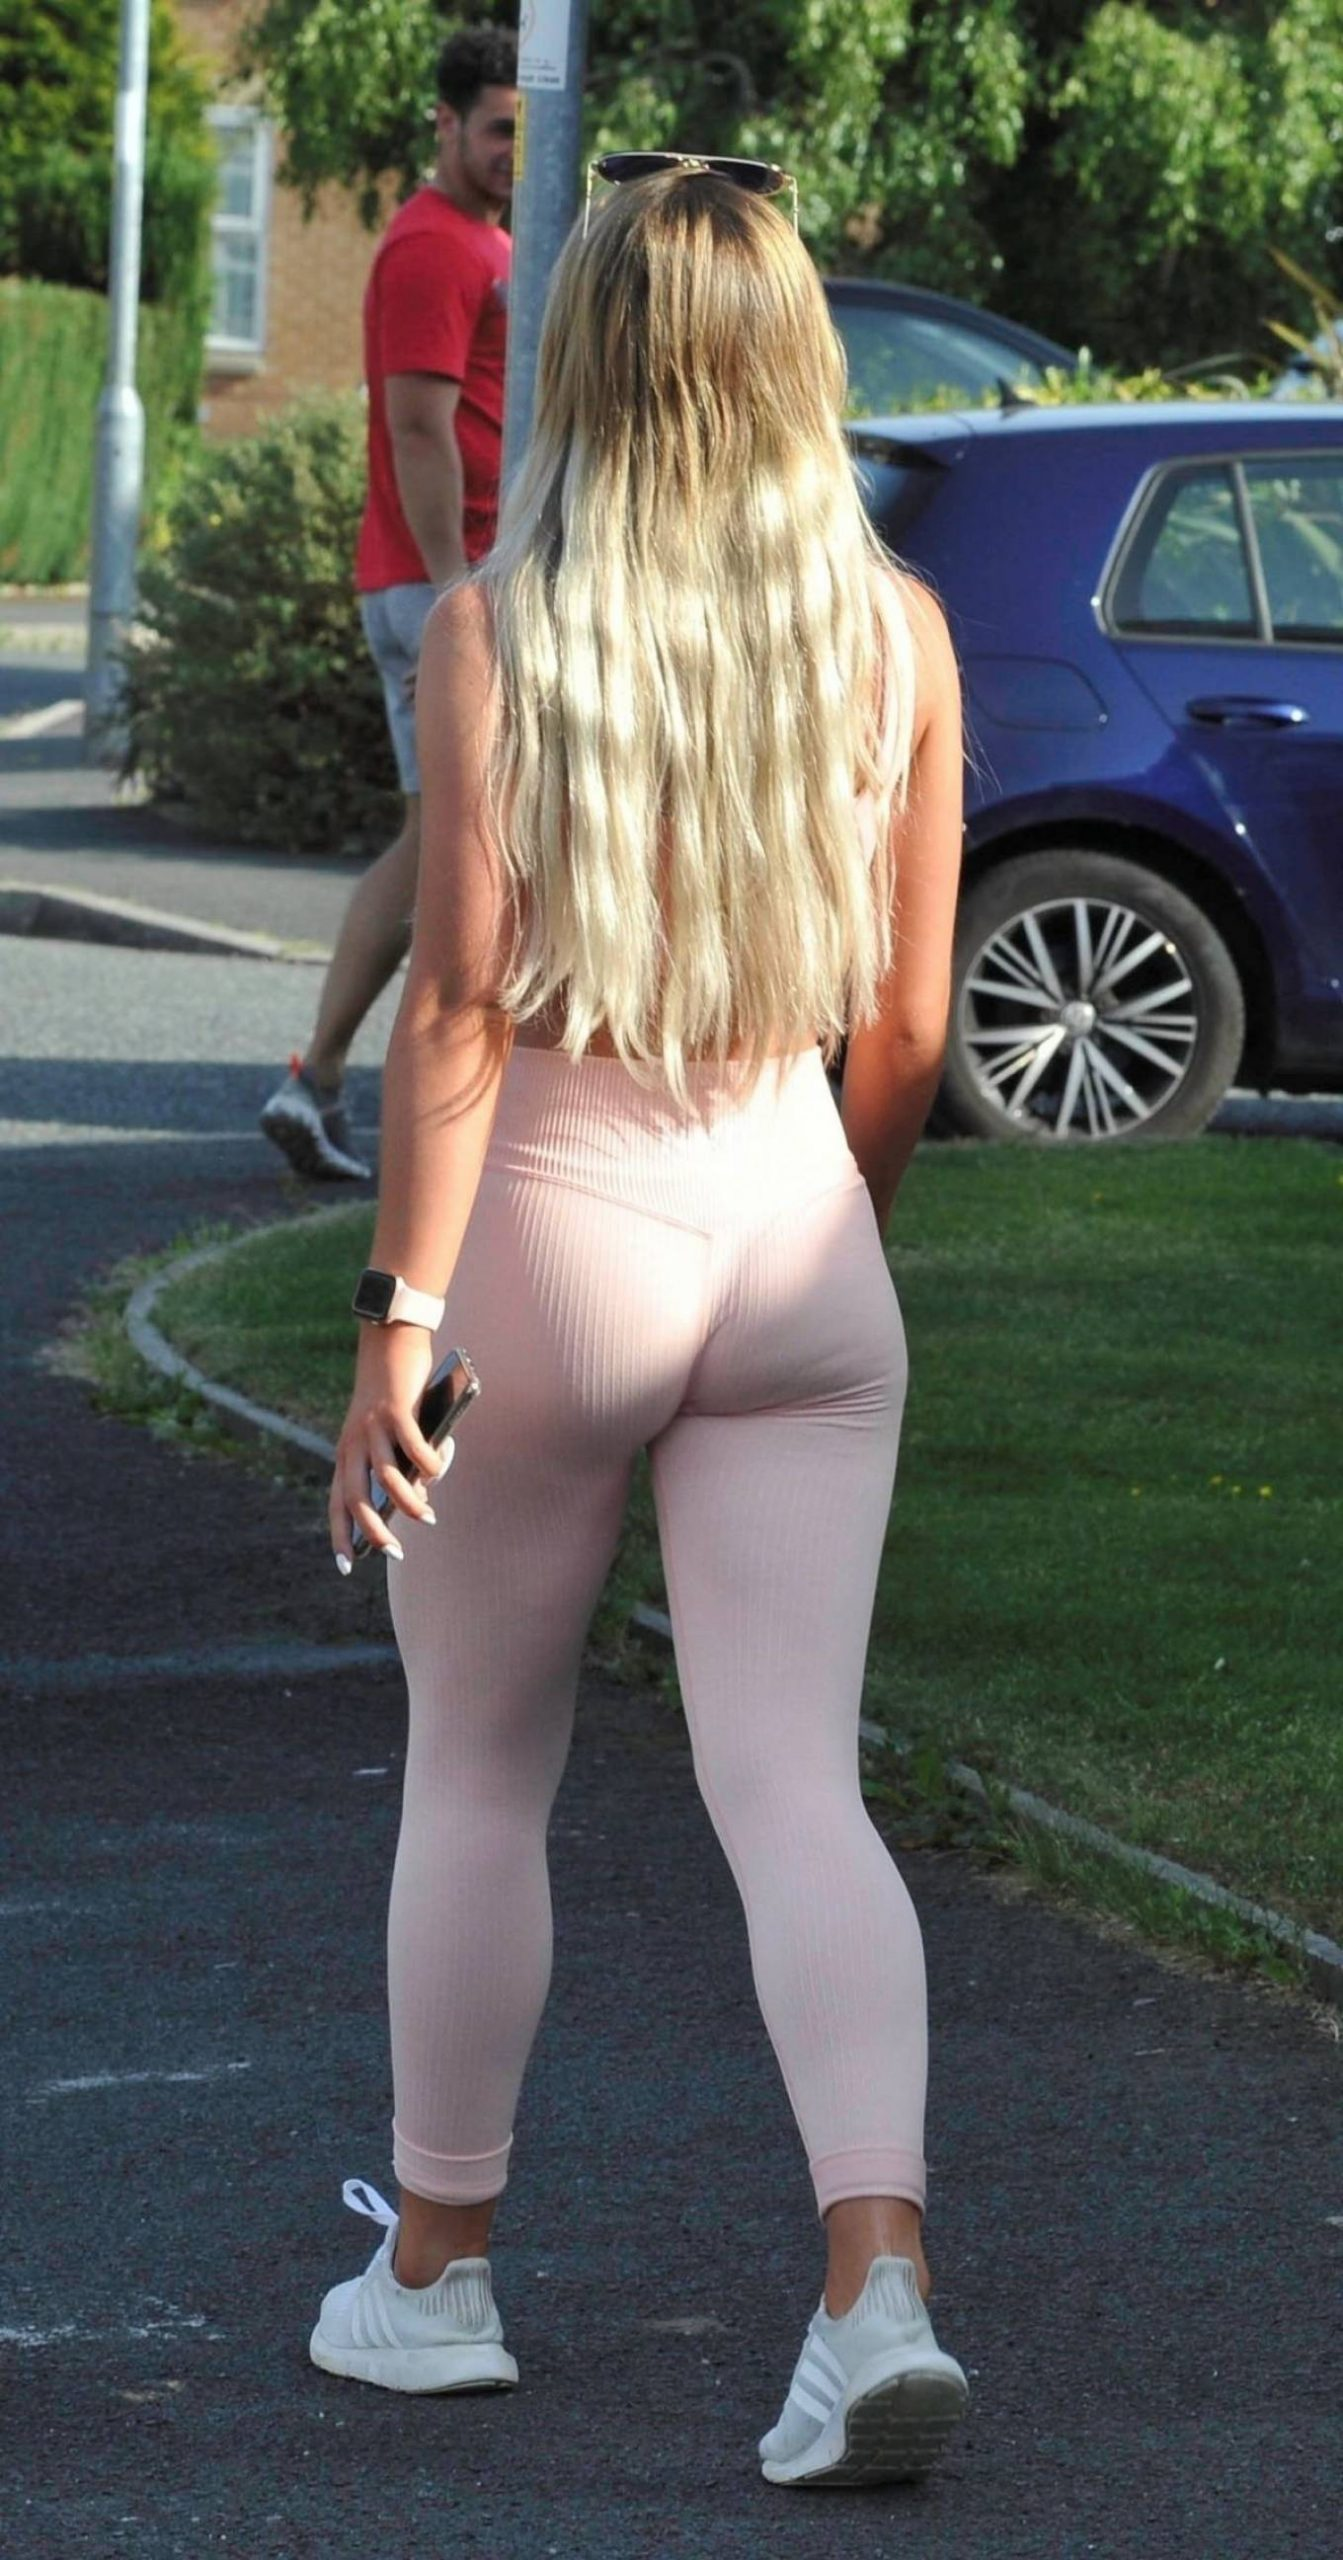 Molly Smith - Out and about in Manchester